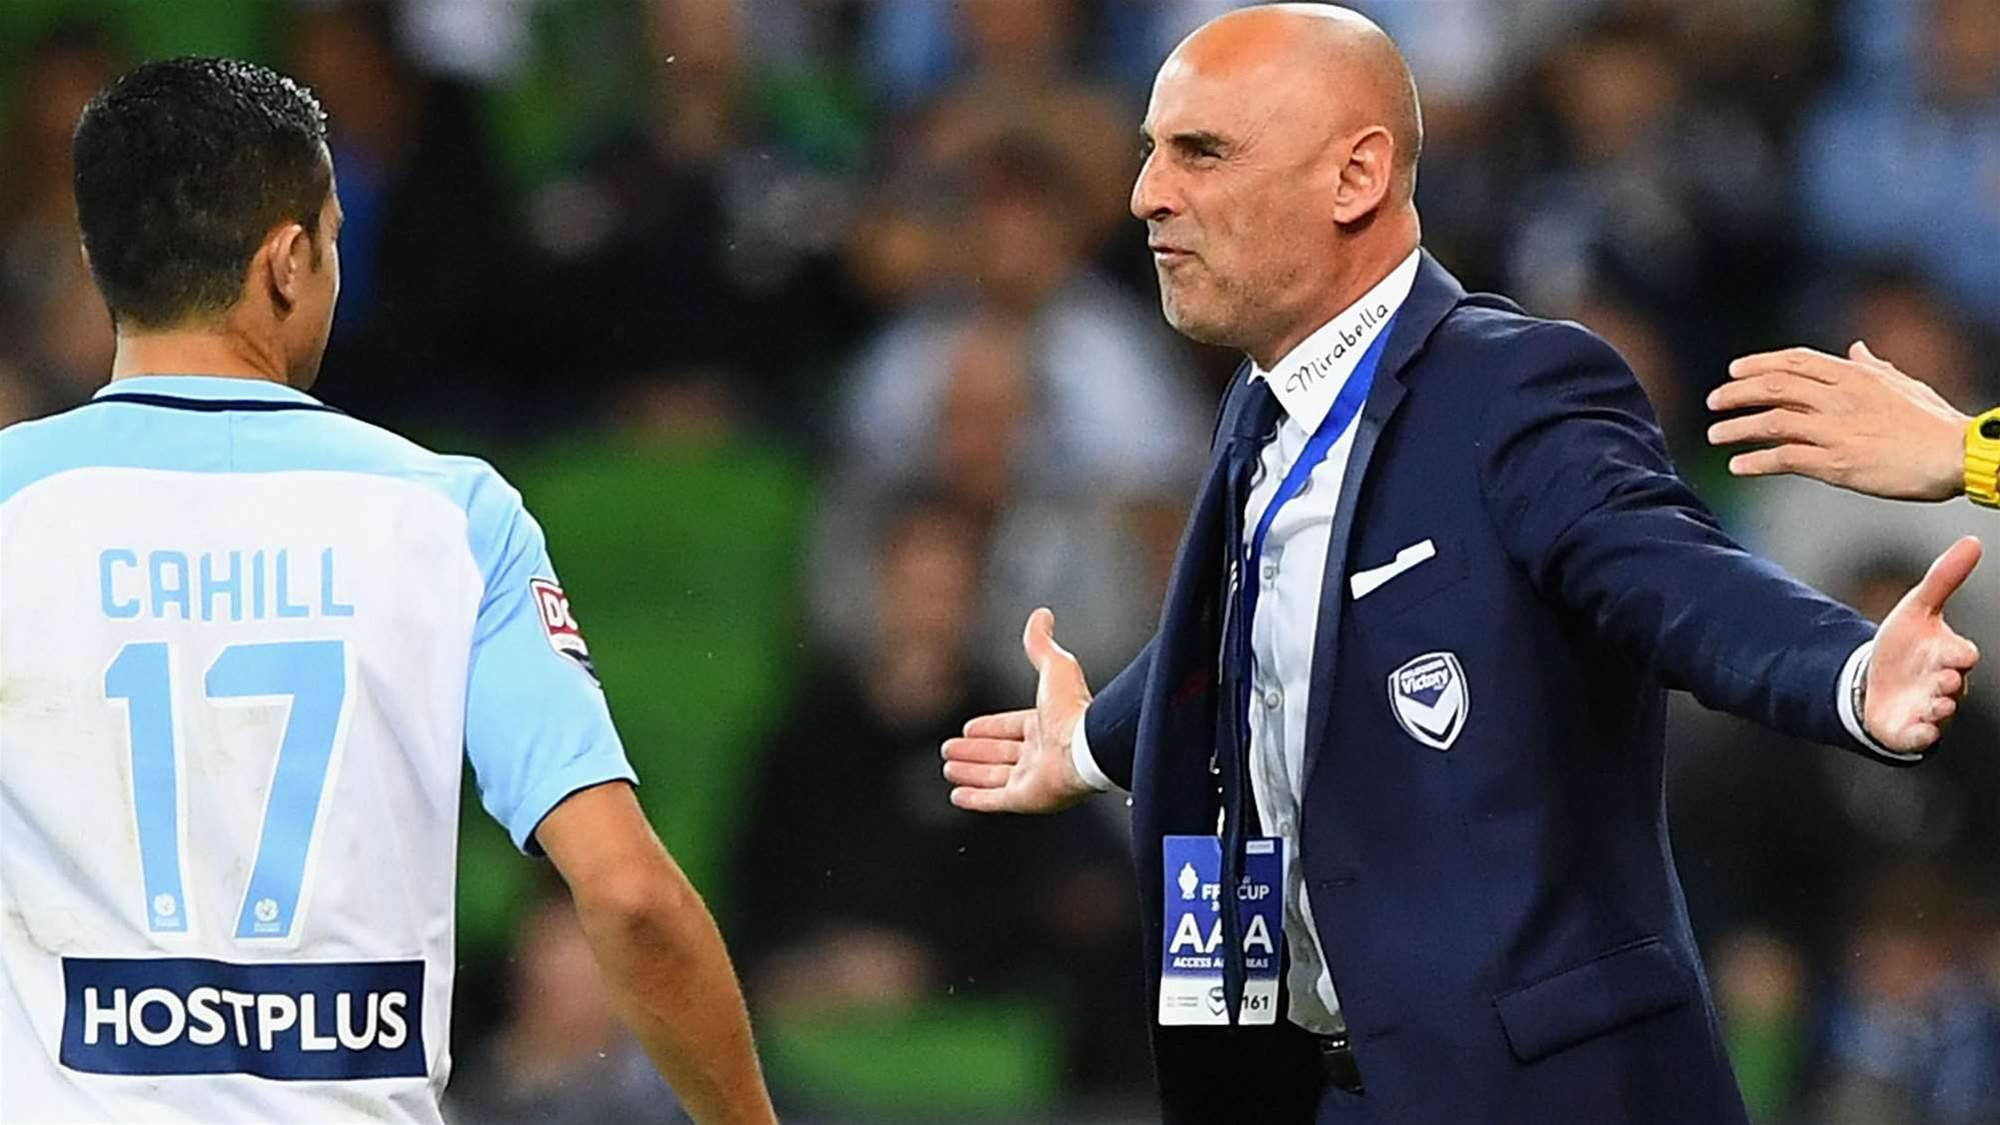 Muscat cited by FFA over post-match comments